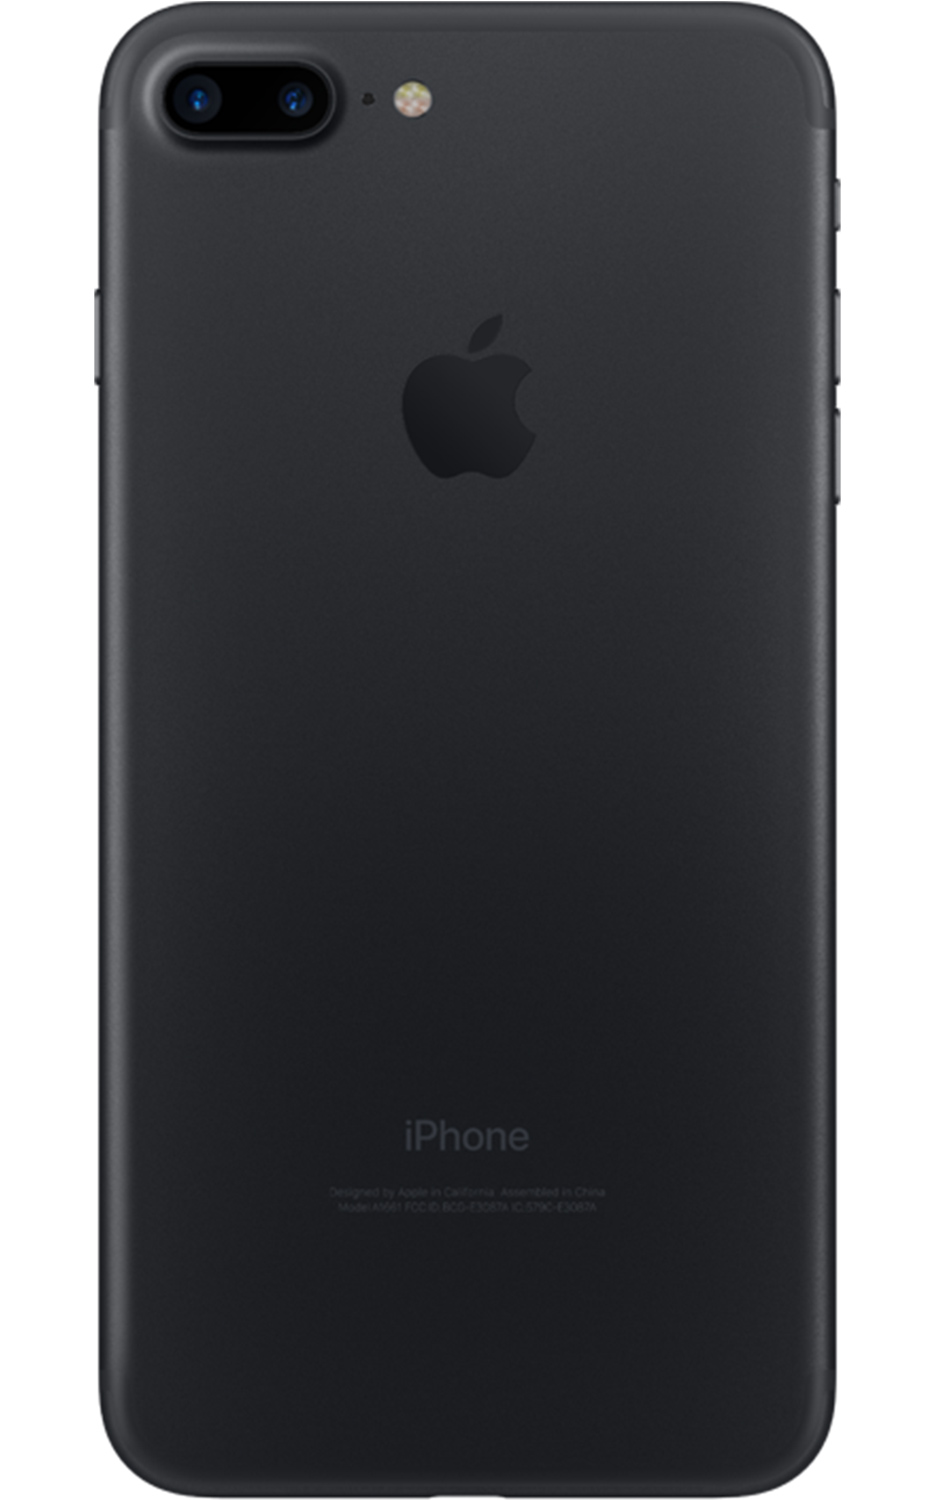 Iphone 7 Plus Holiday Deals Reviews Specs T Mobile Apple 32 Gb Rose Gold